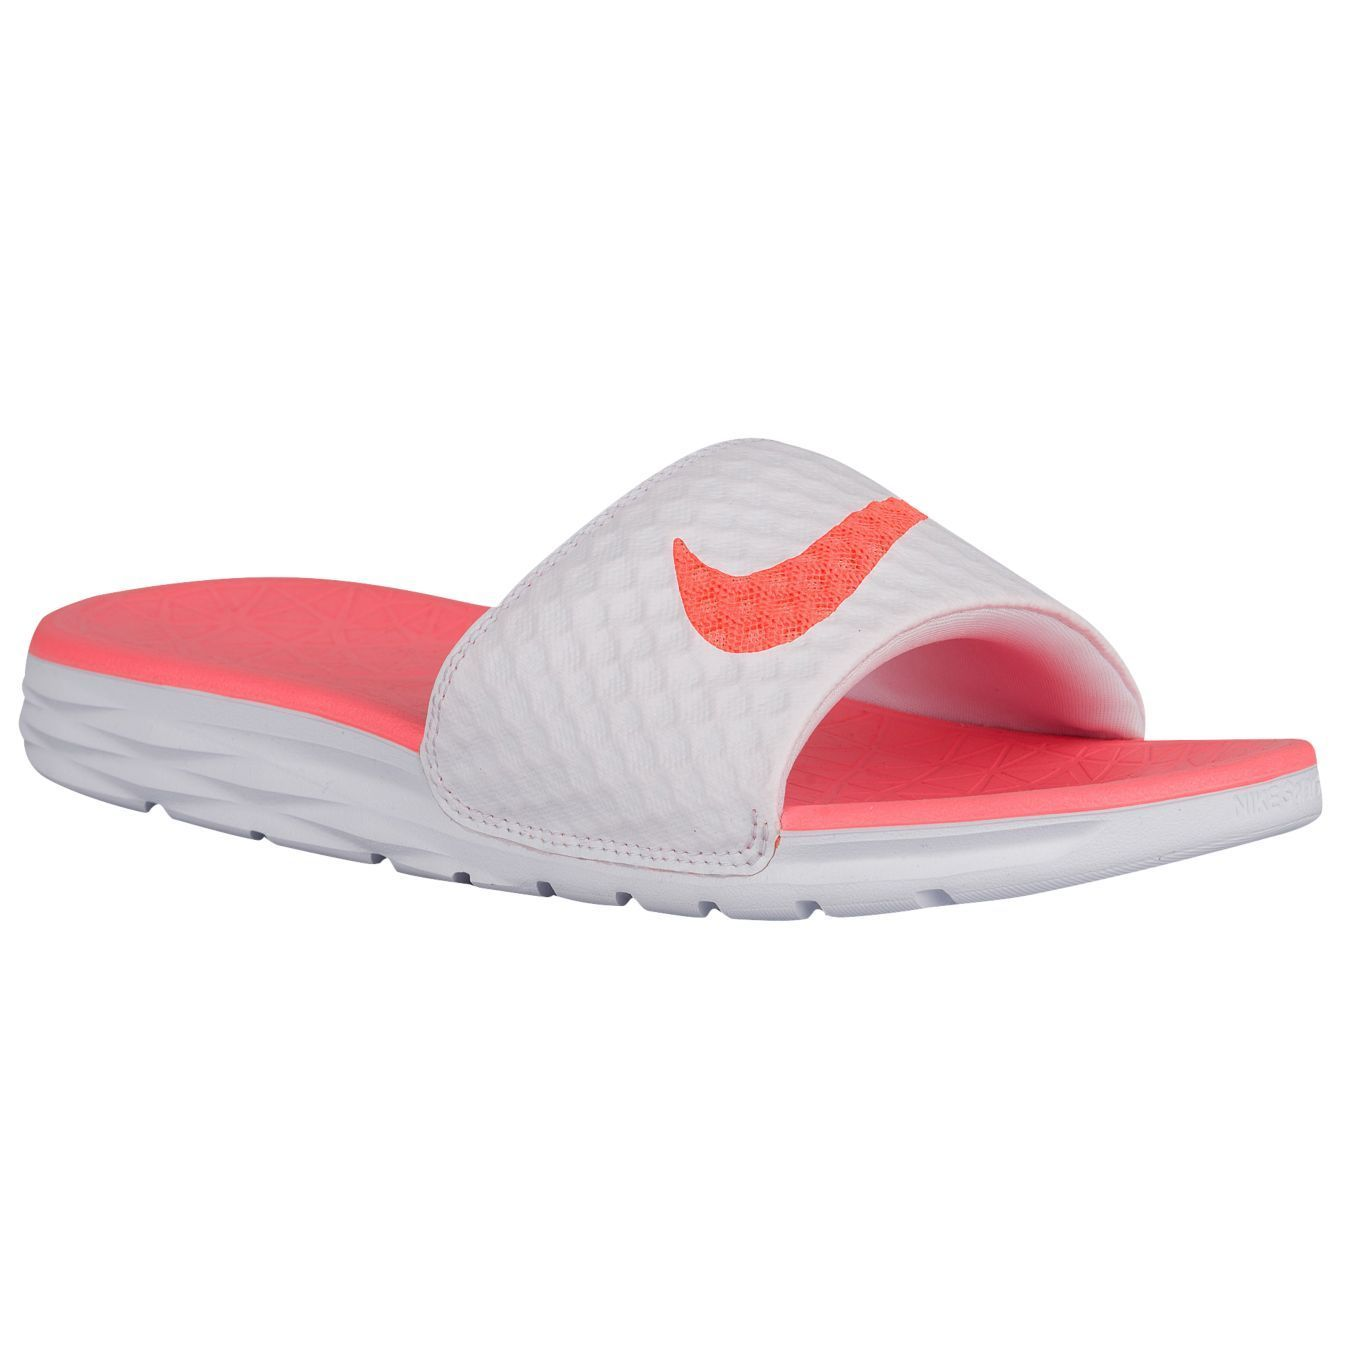 Lastest 26 Fantastic Women Slides Nike U2013 Playzoa.com